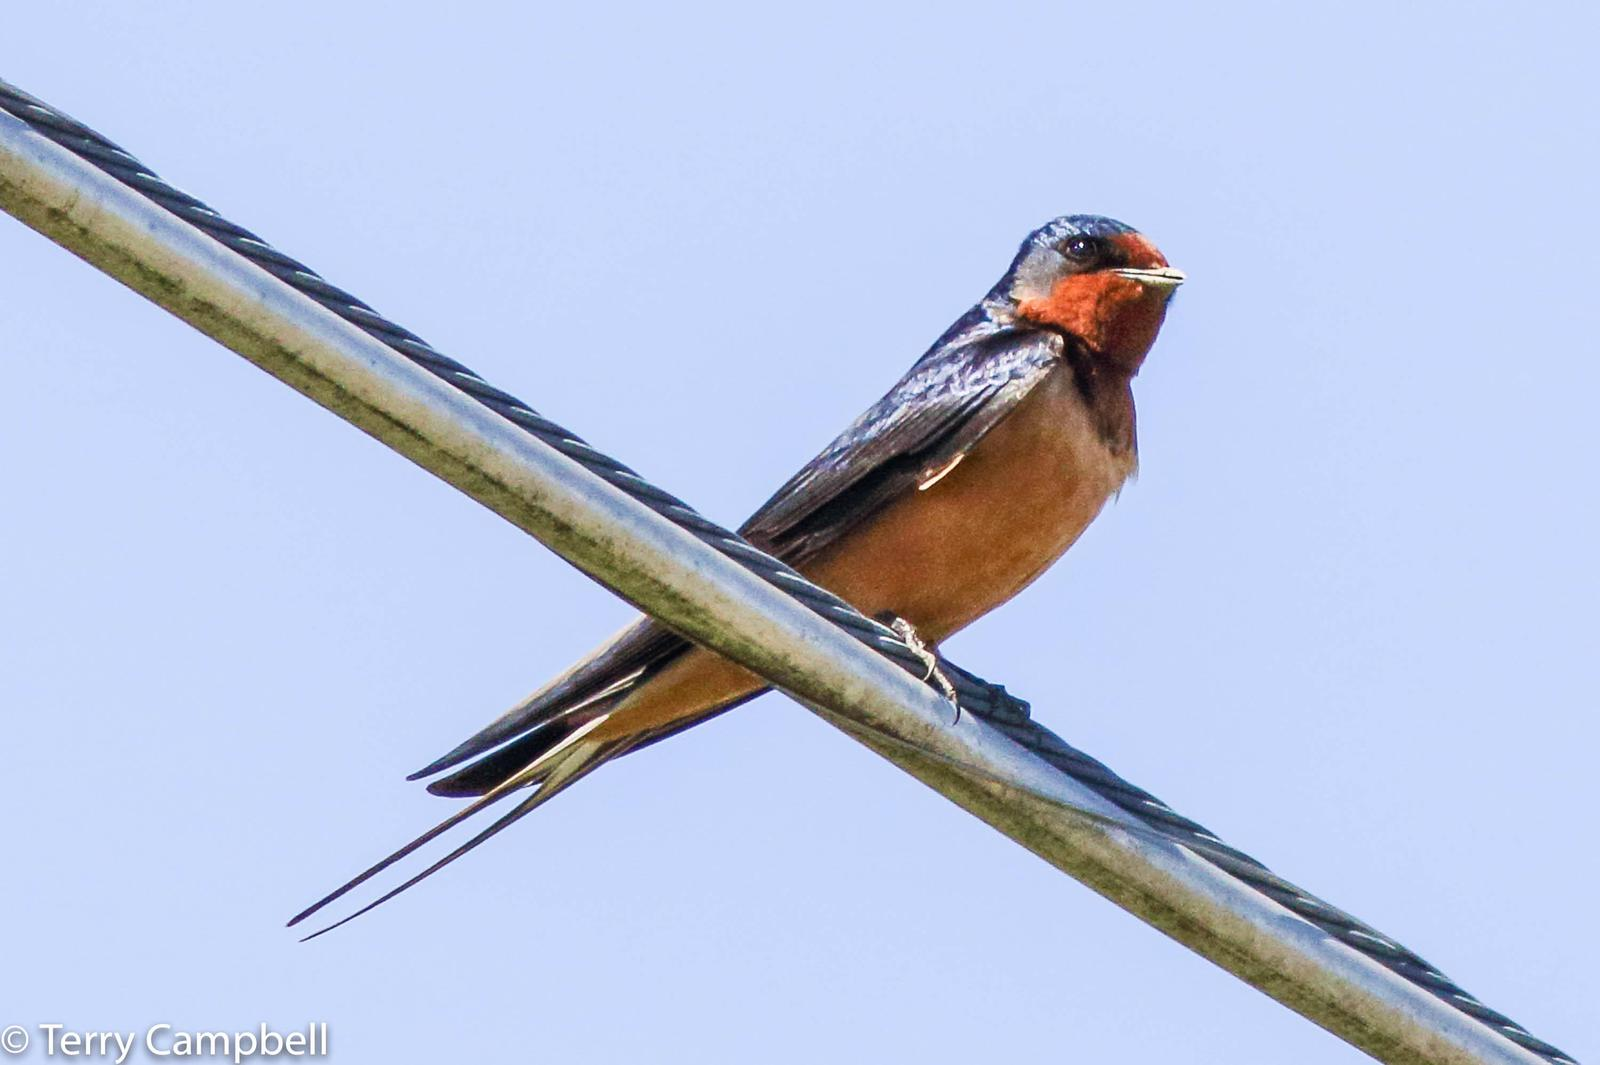 Barn Swallow Photo by Terry Campbell